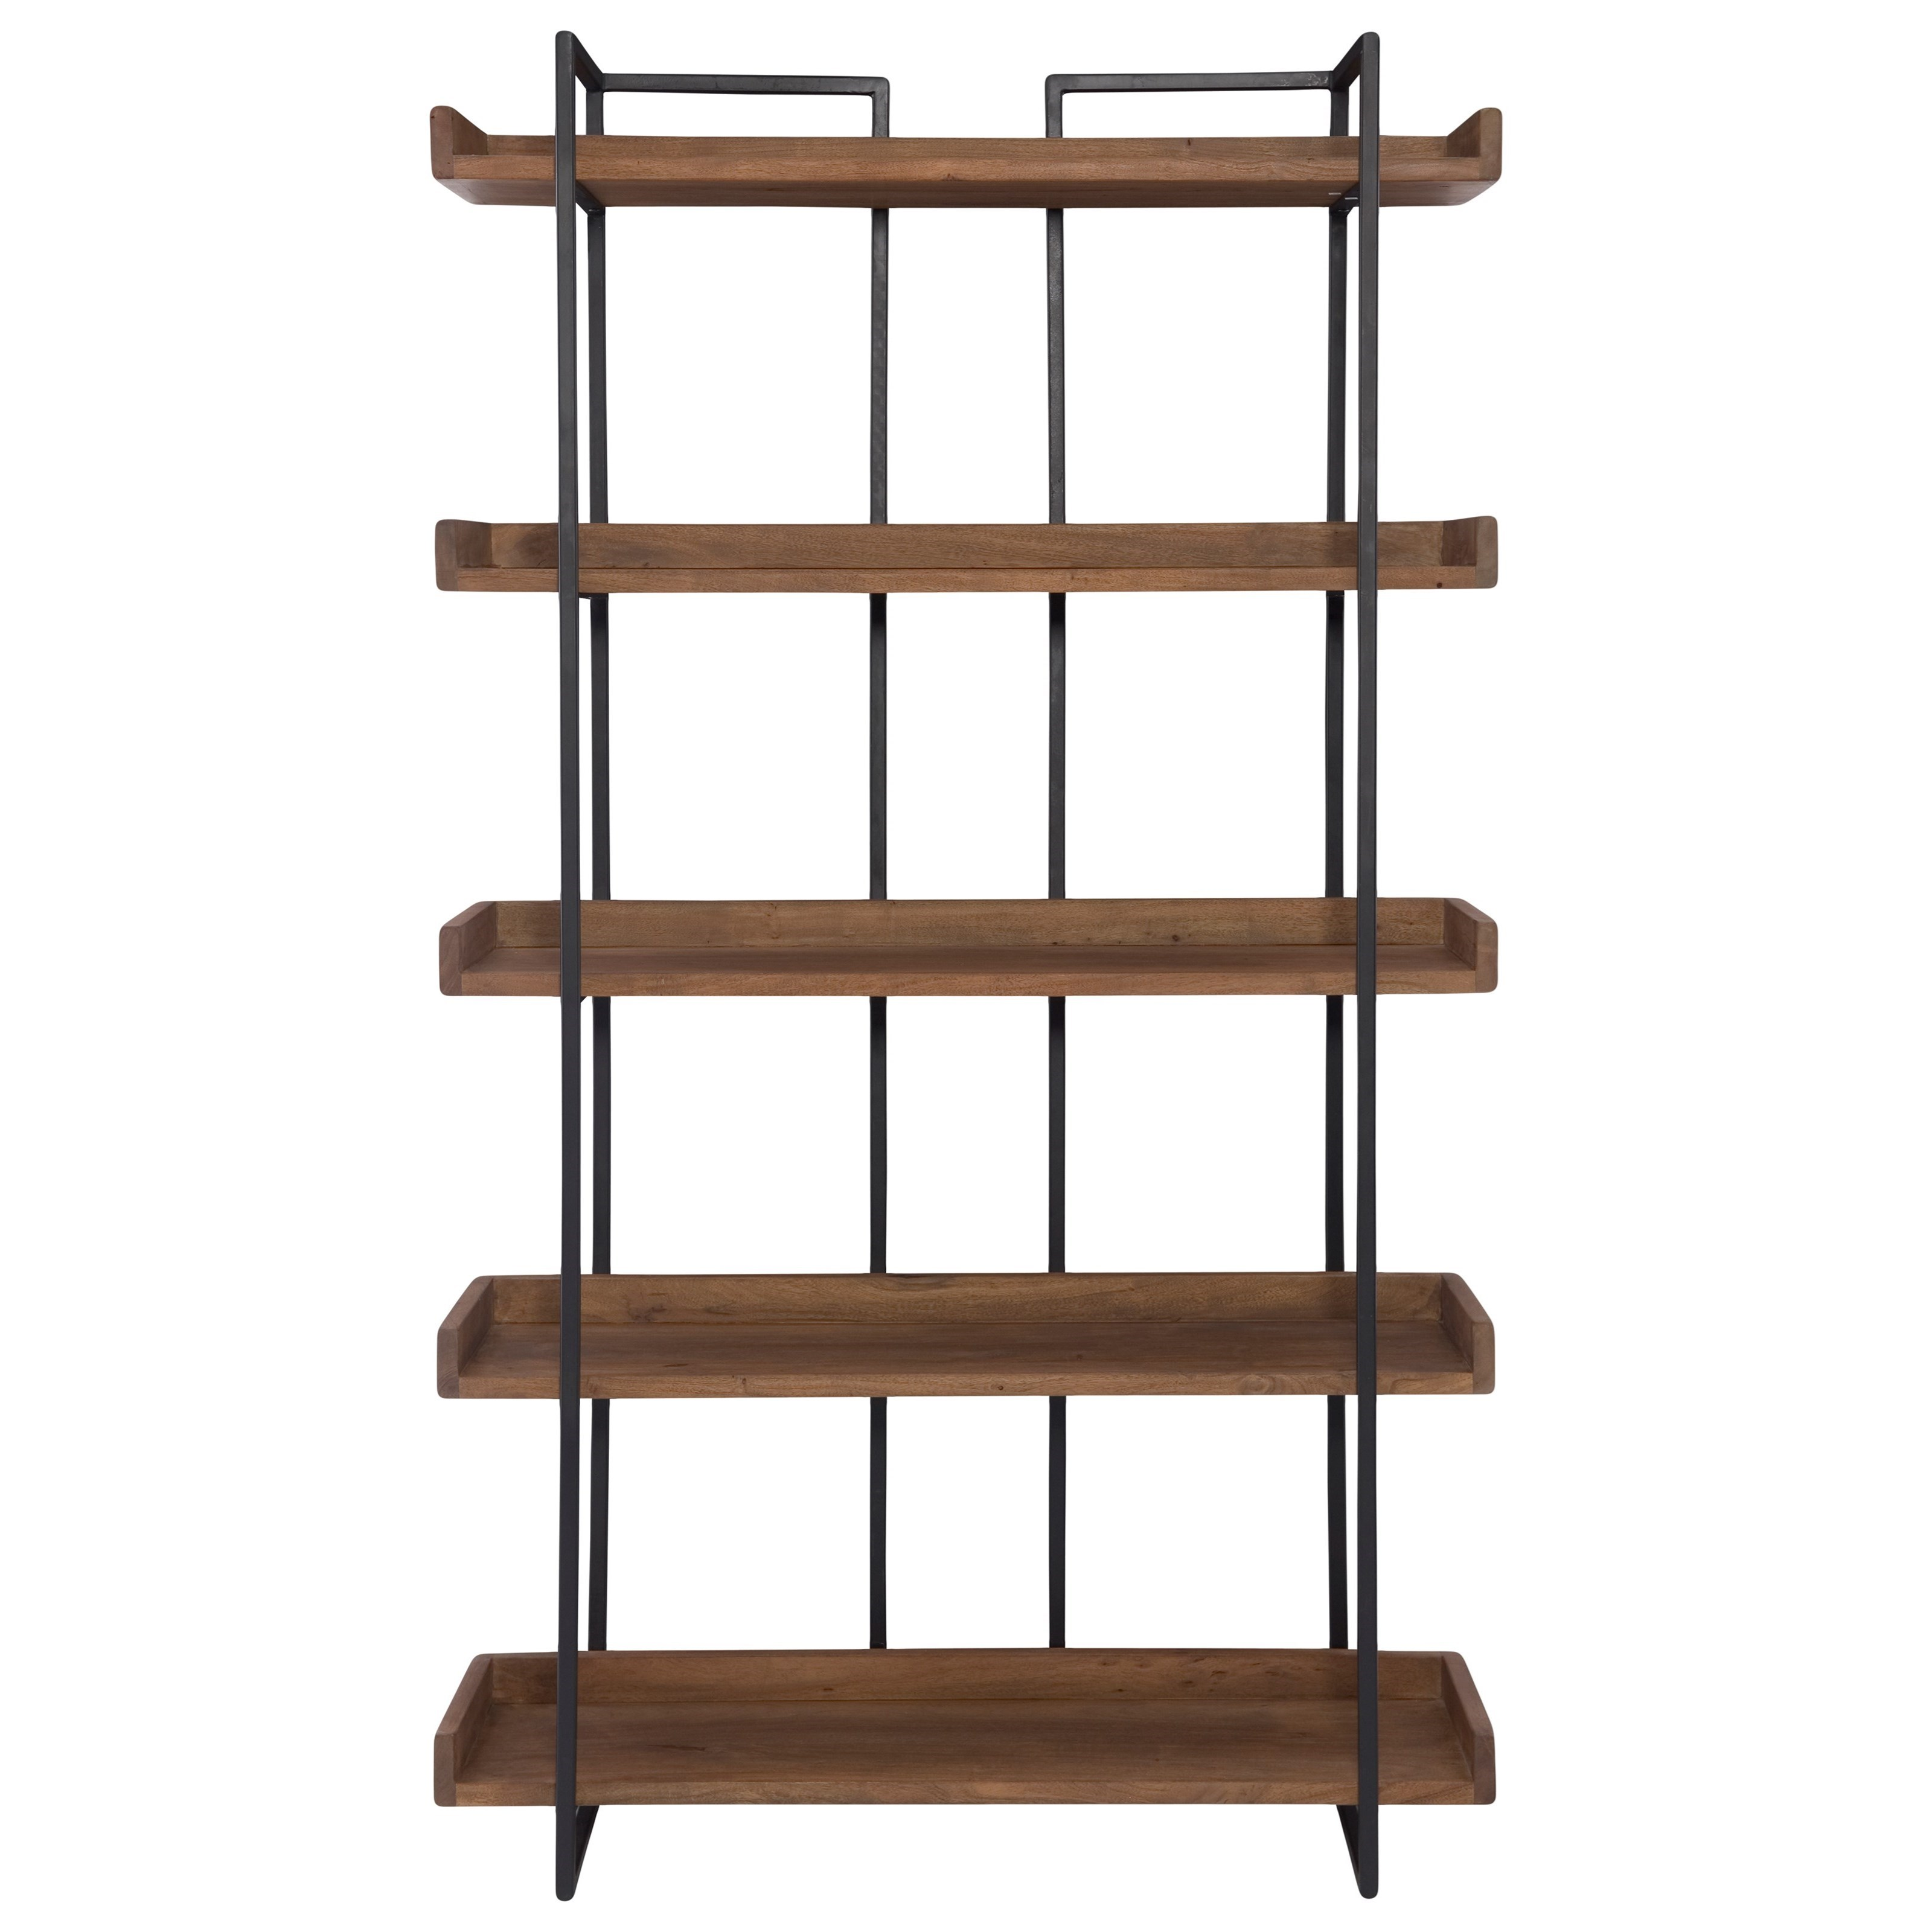 Vancouver Small Bookshelf by Moe's Home Collection at Stoney Creek Furniture